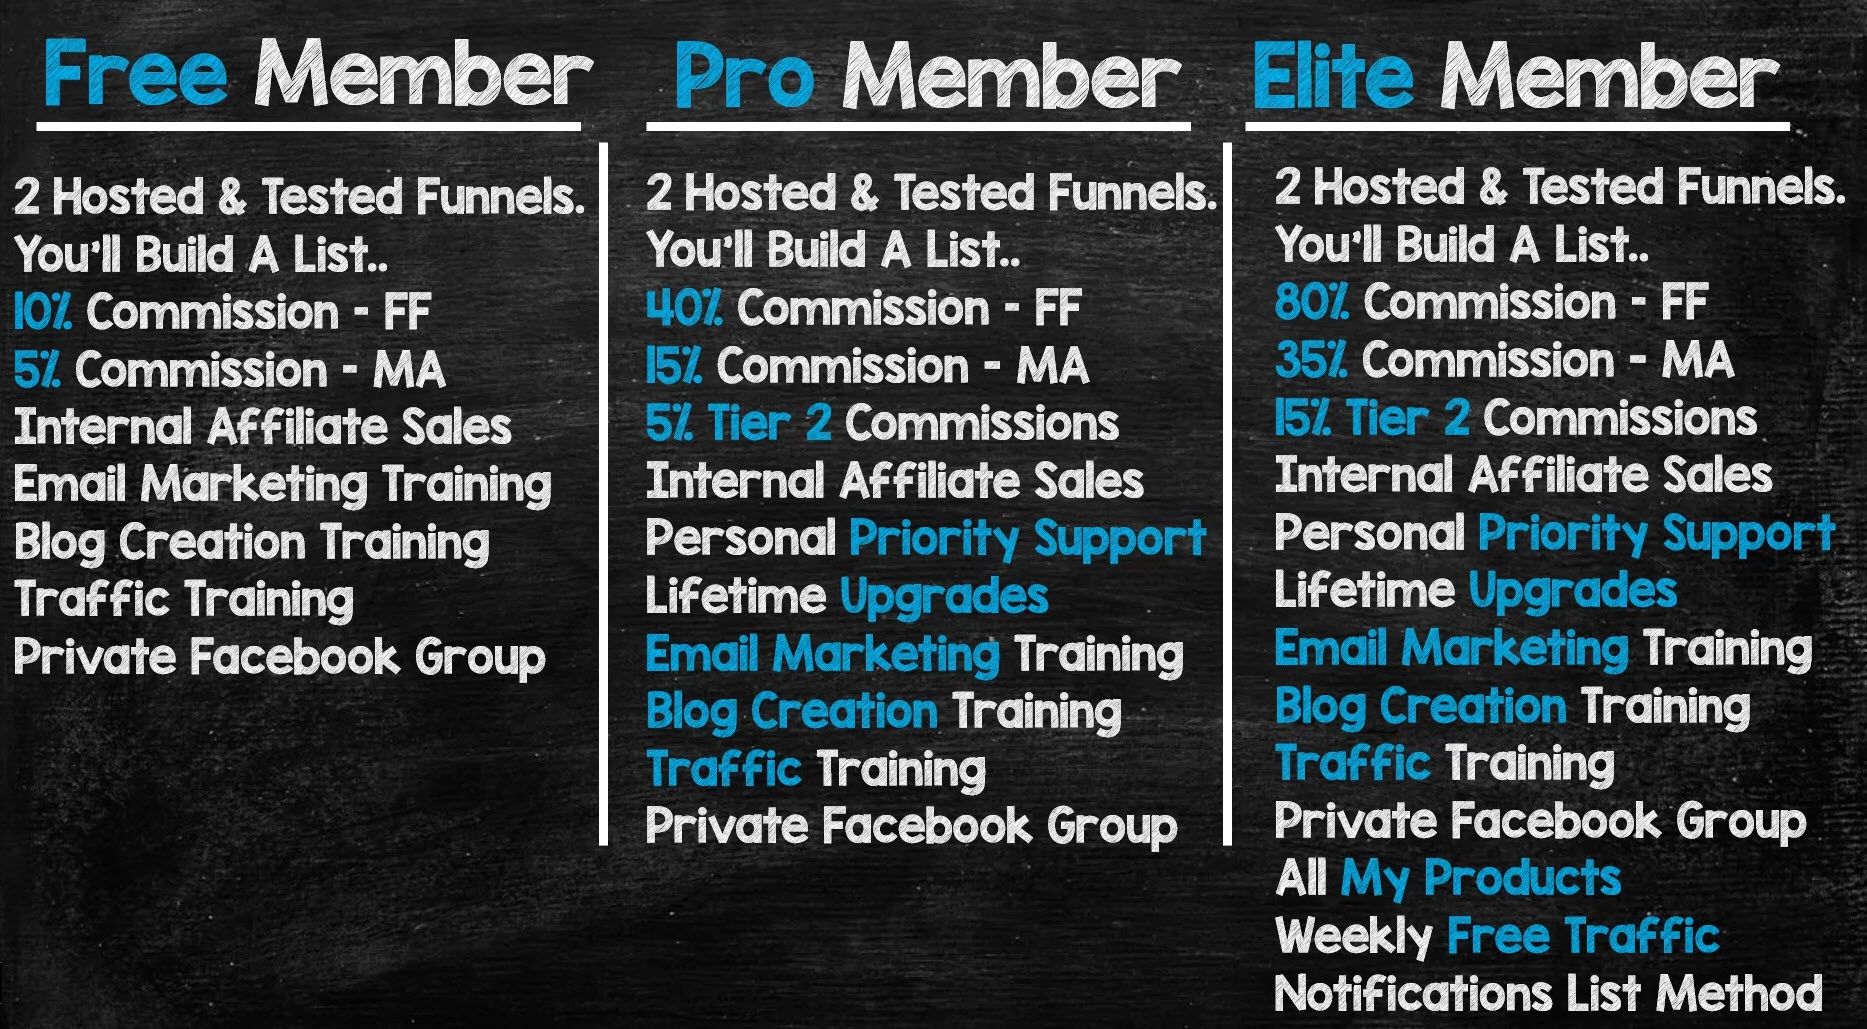 Funnel Franchise system gives even more if you make an Upgrade to PRO or ELITE Level - Funnel Franchise Review by Gena Babak - FREE - PRO - ELITE PLANS